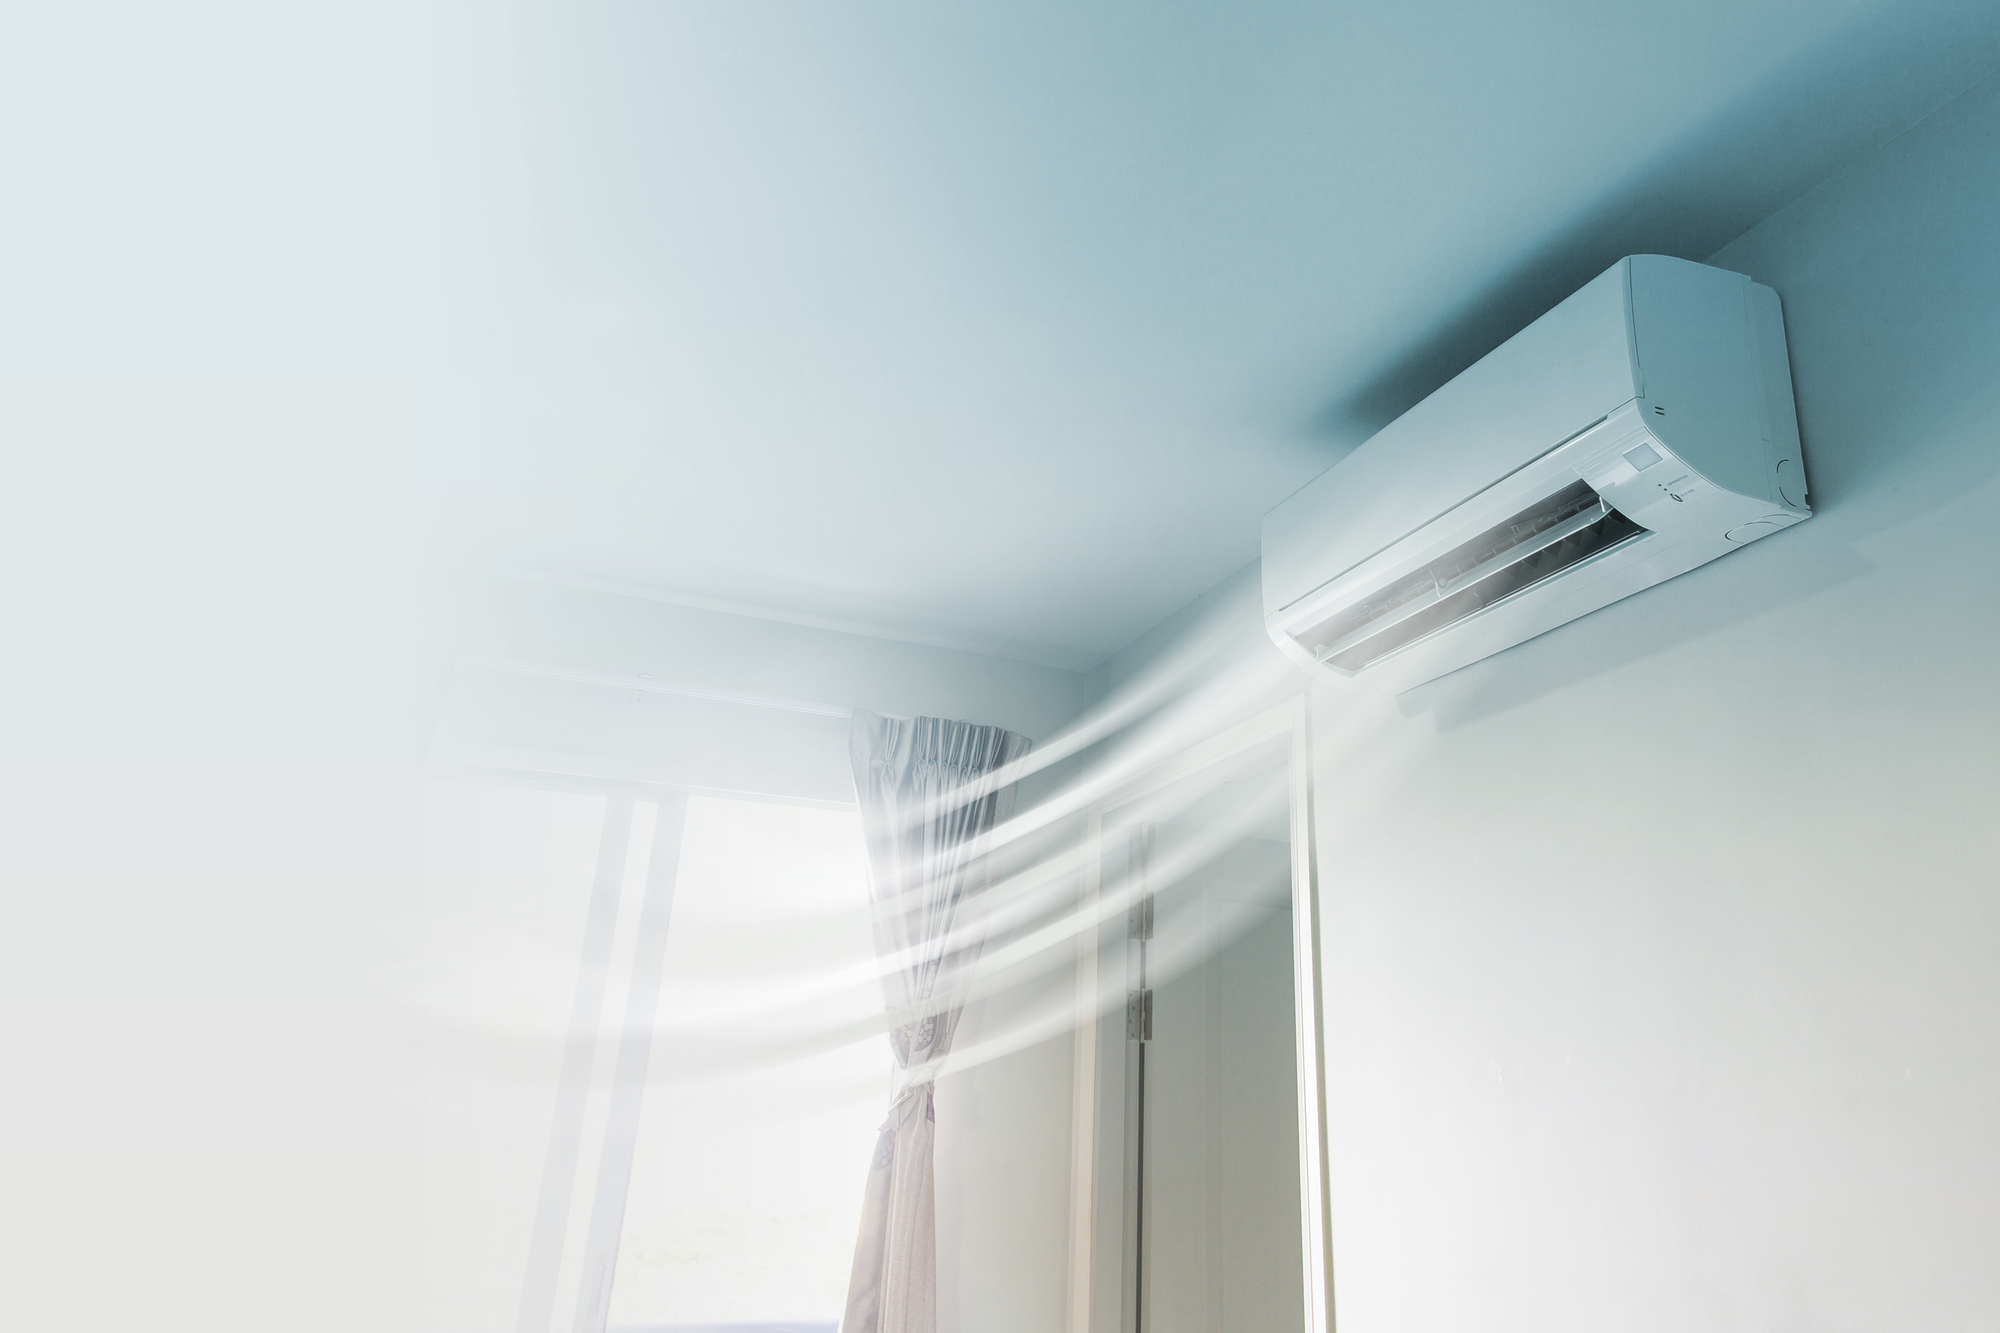 AC Not Blowing Cold Air? Here's What May Be Wrong